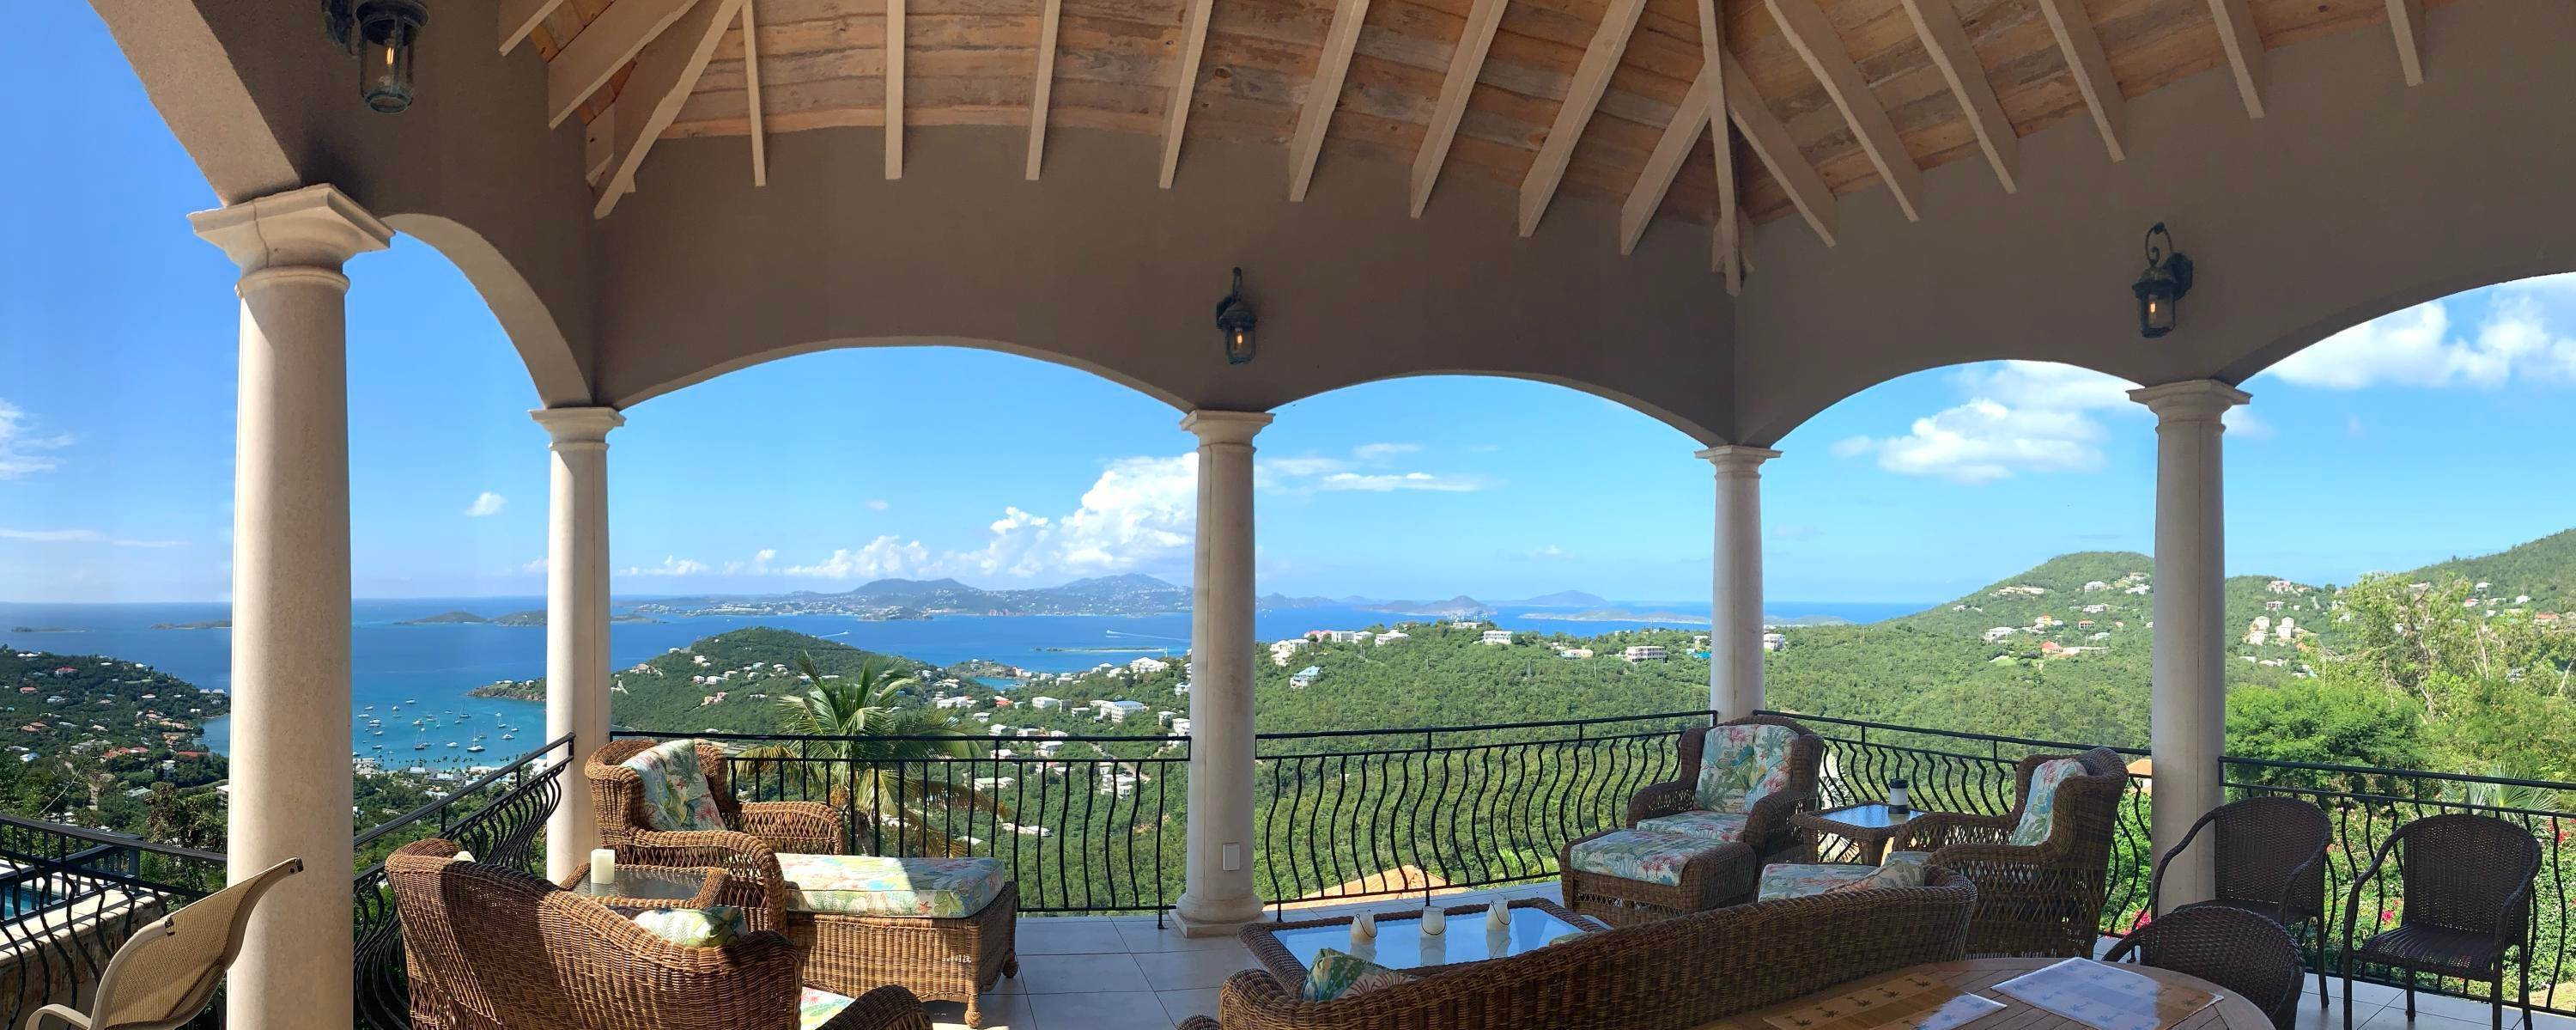 23. Single Family Home for Sale at 3B-53 Sans Soucci & Guinea Gut Cruz Bay St John, Virgin Islands,00830 United States Virgin Islands